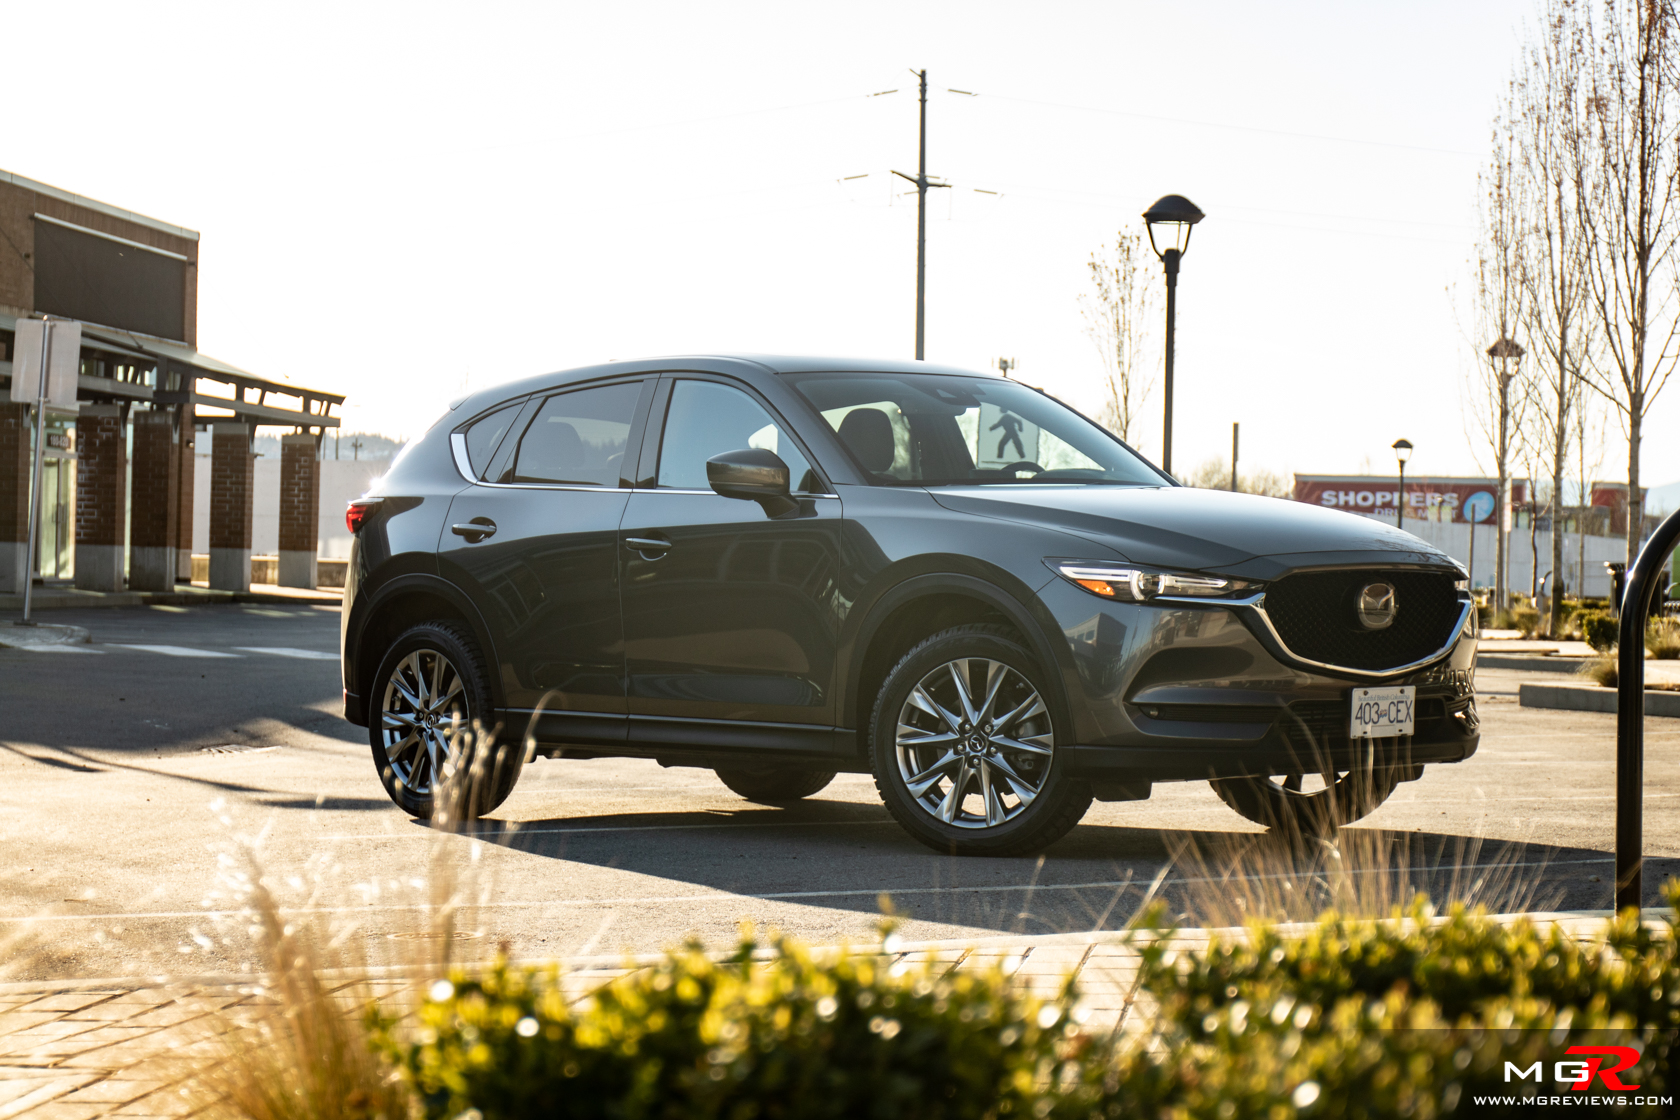 Review: 2019 Mazda CX-5 Signature – M G Reviews